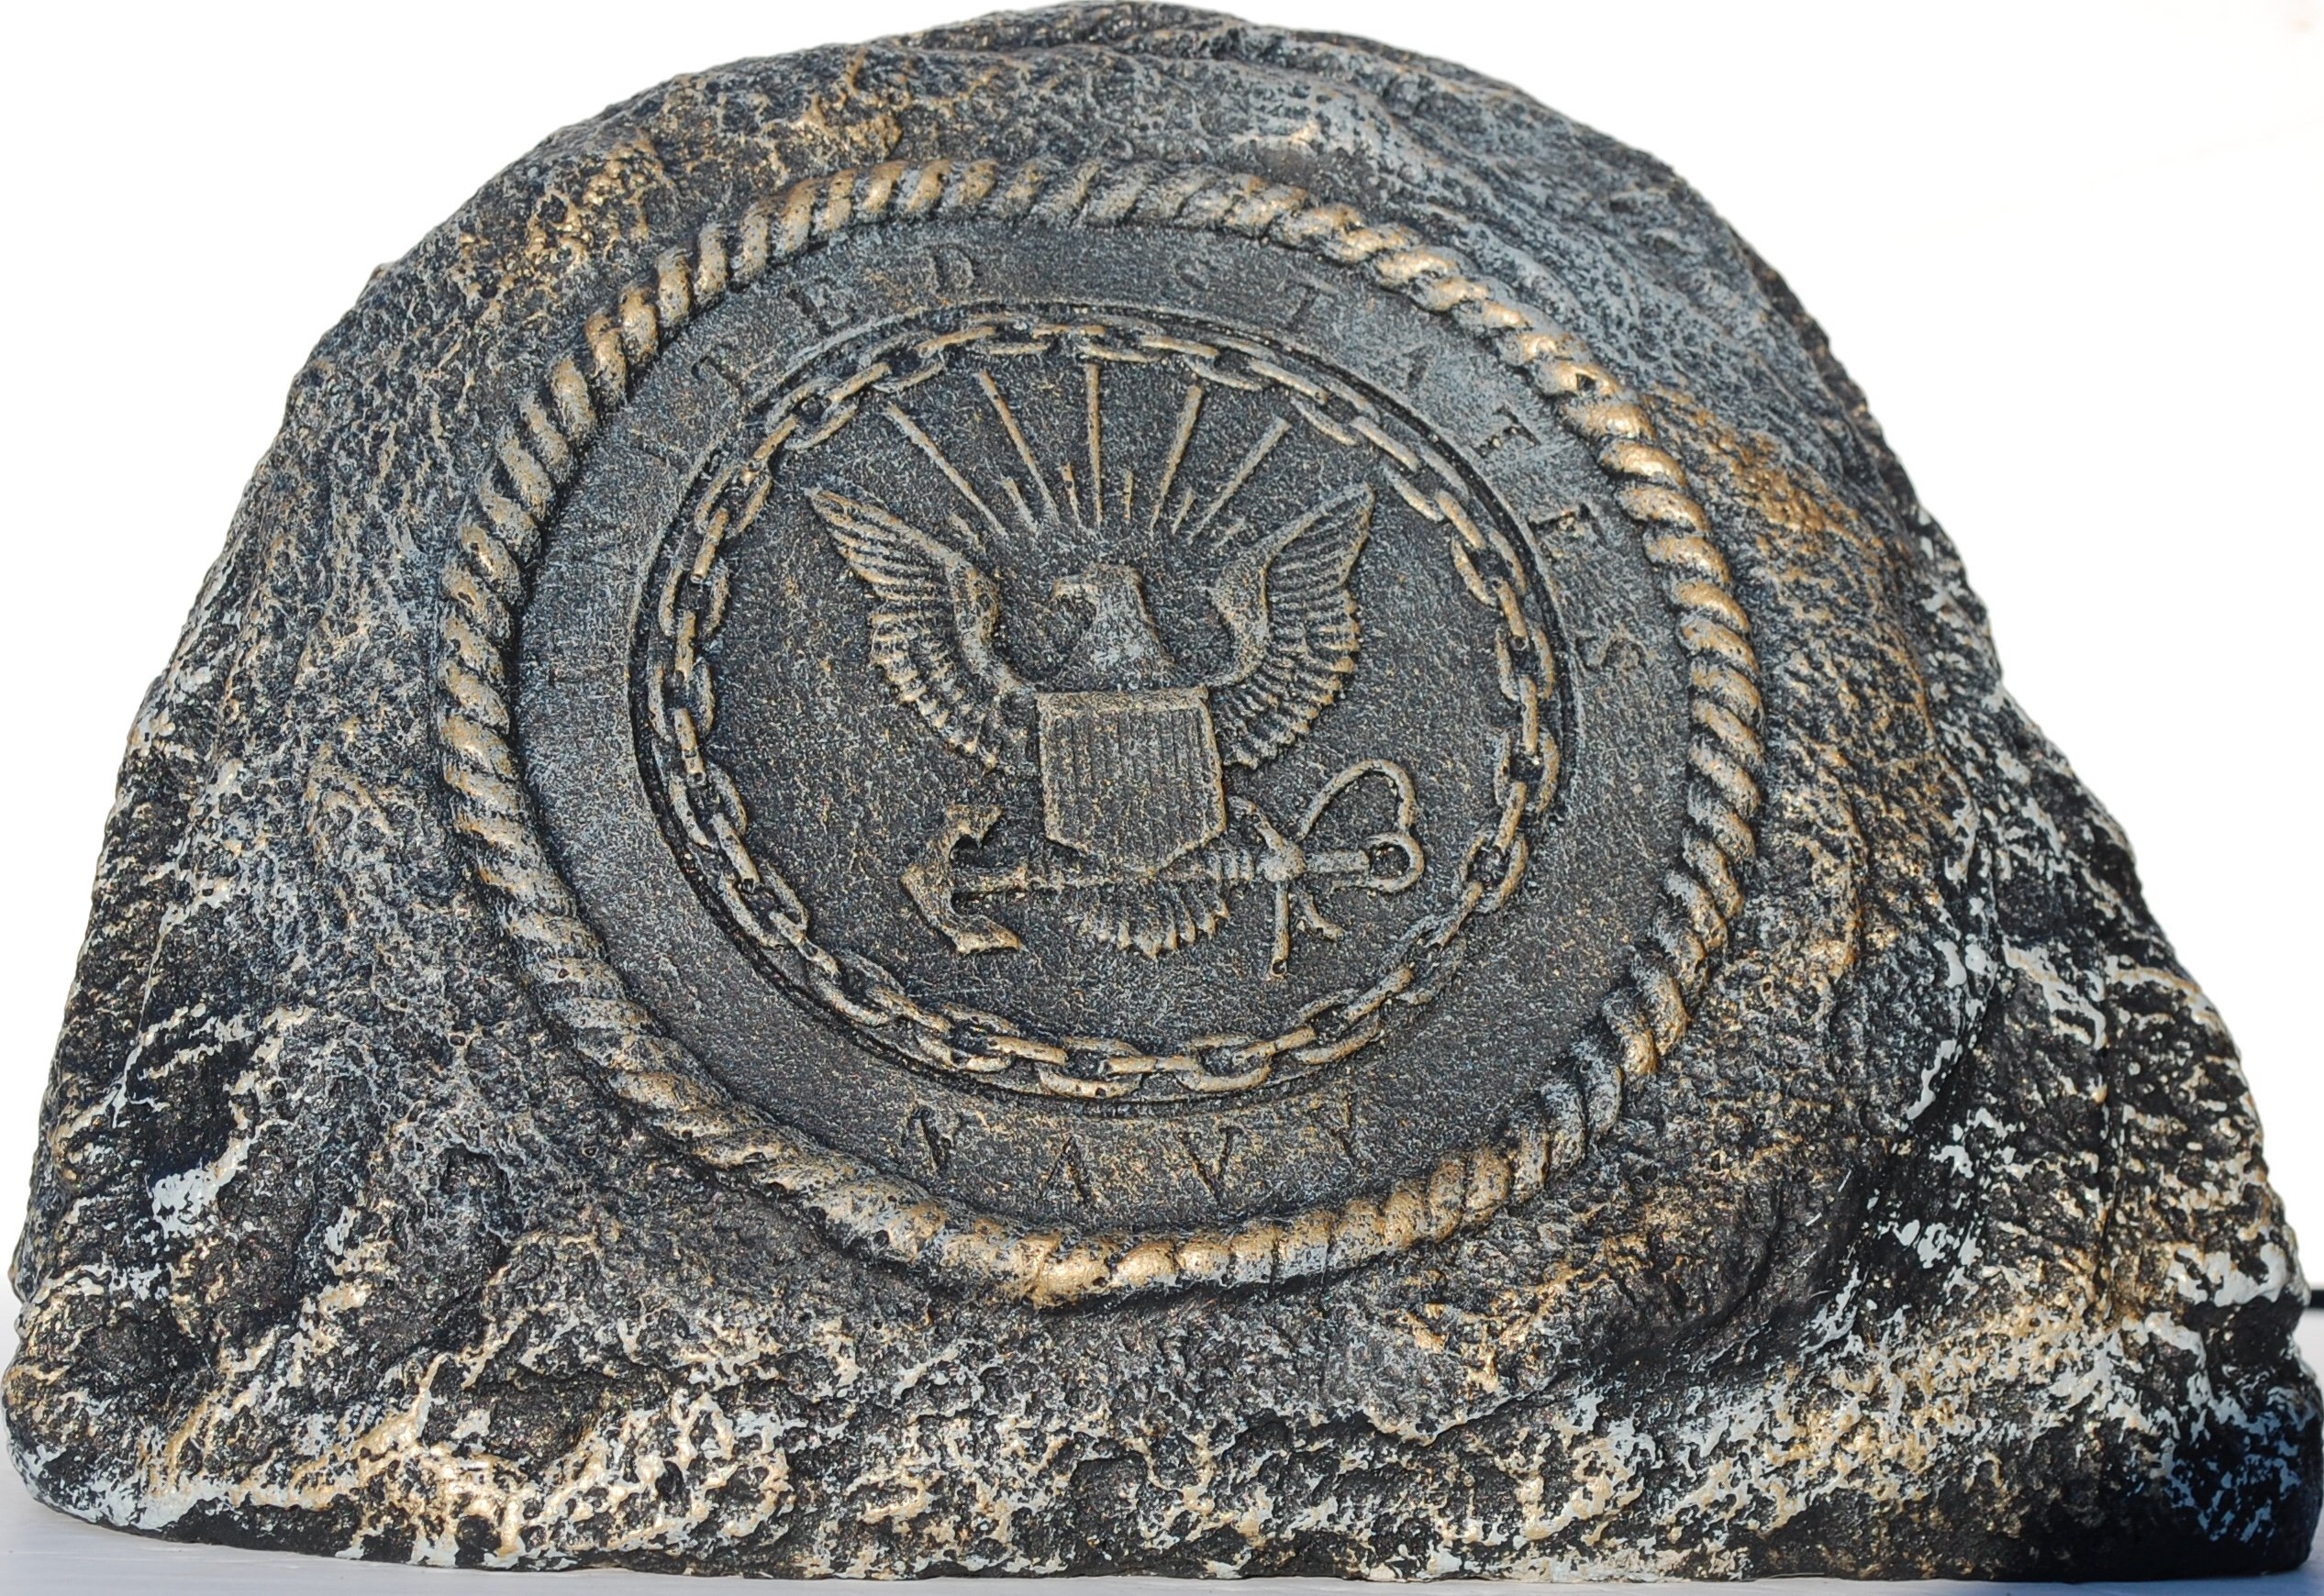 Navy Service Stone Memorial Handmade in USA made of cast stone concrete great for indoor or outdoor 3 color options available(Bronze Patina)